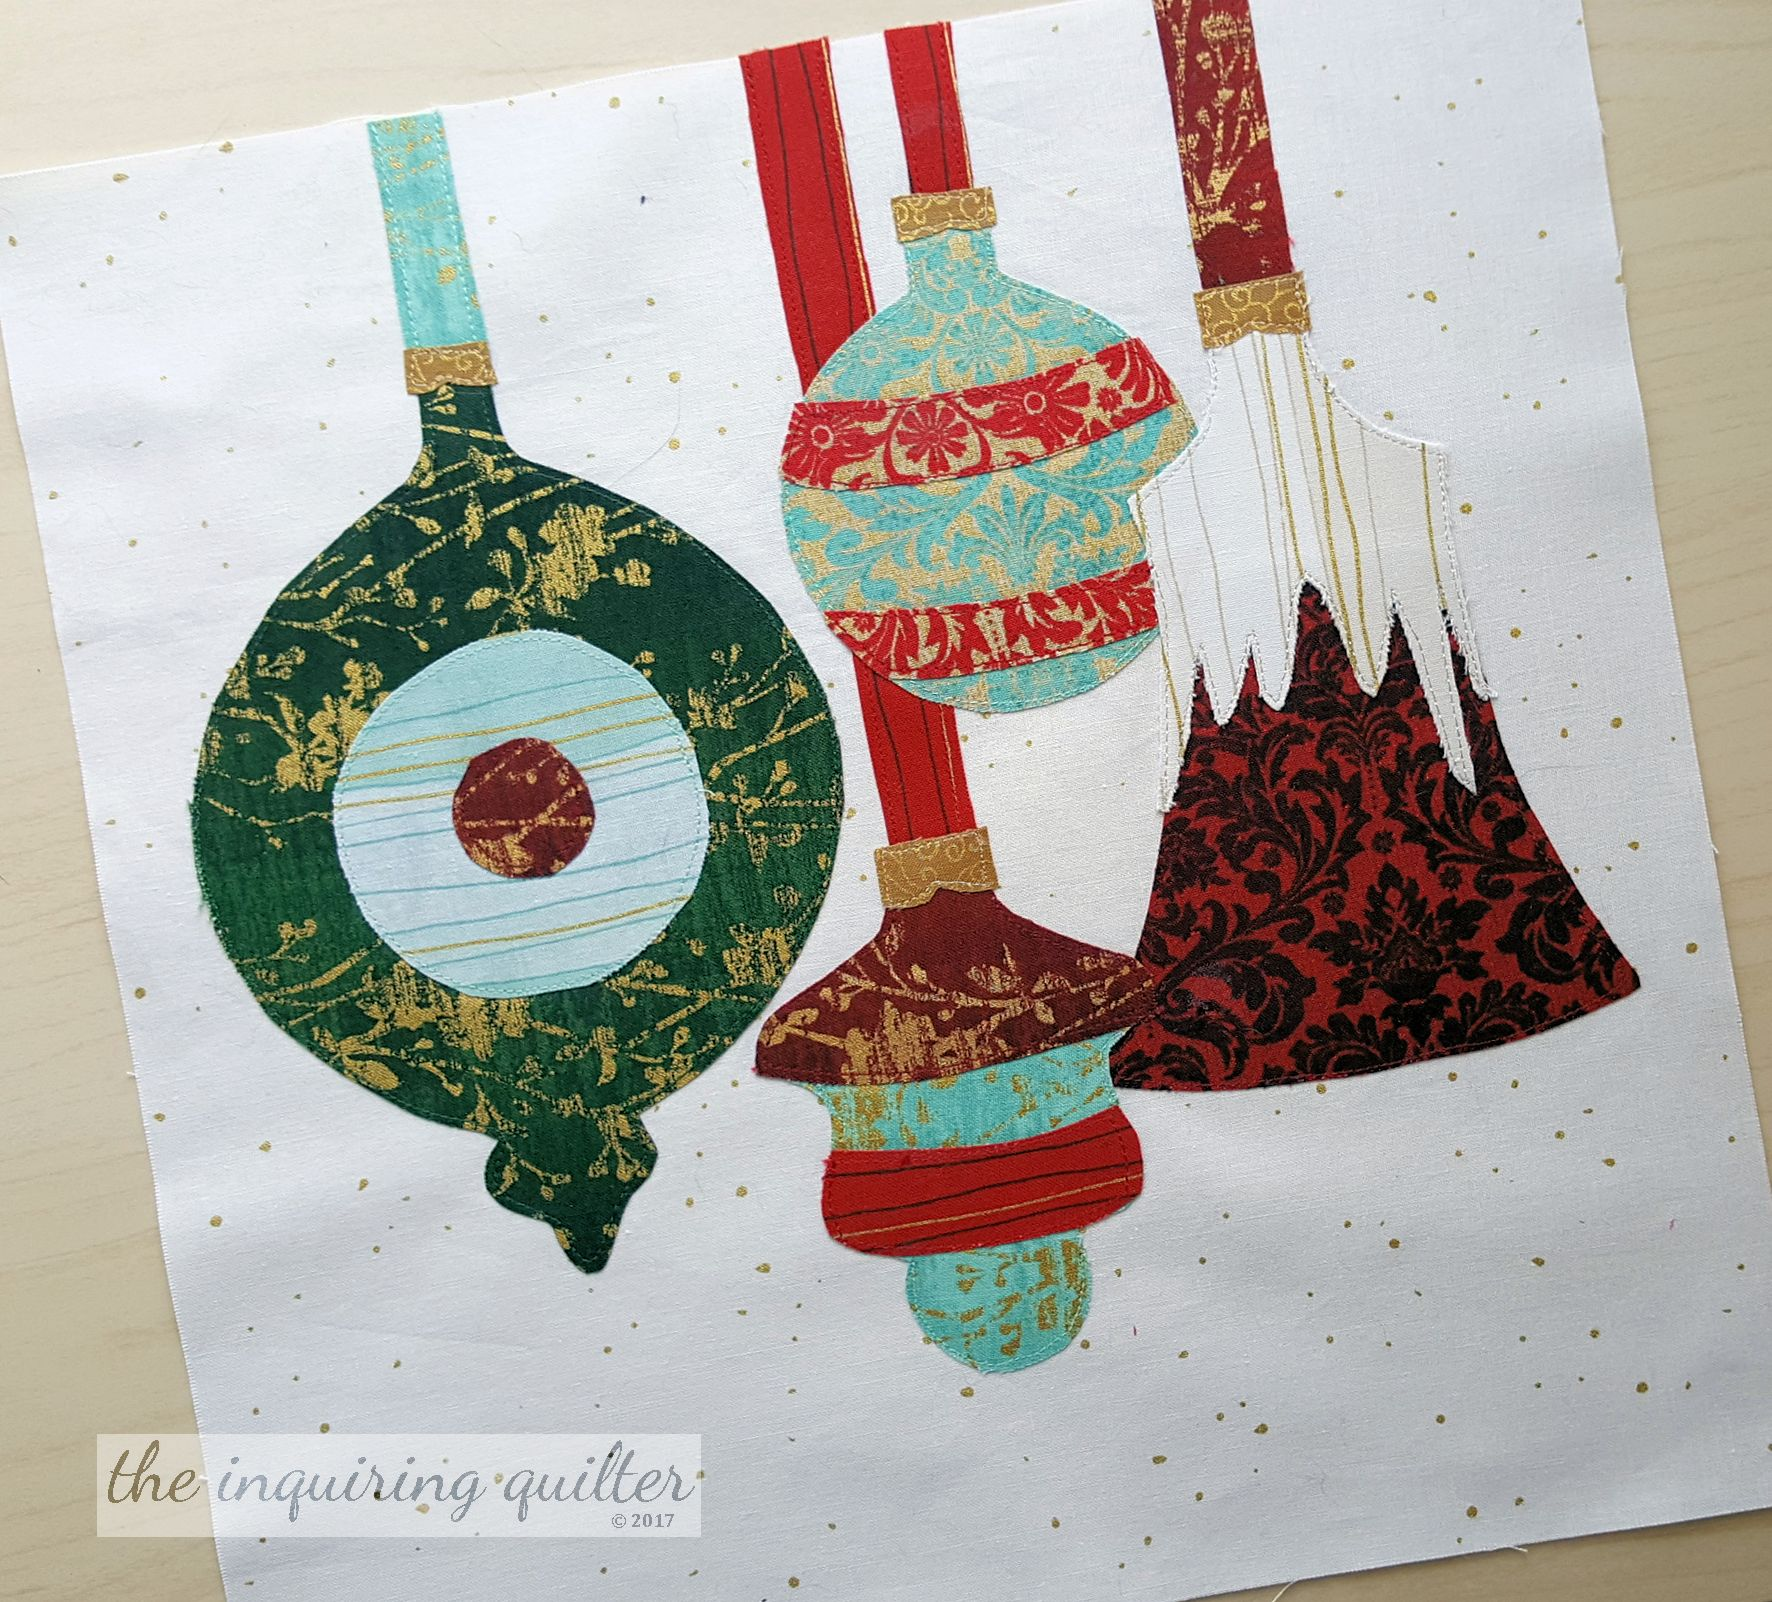 I created my Christmas Memories block pattern as part of the I Wish You a Merry Quilt Along with my Partners in Design